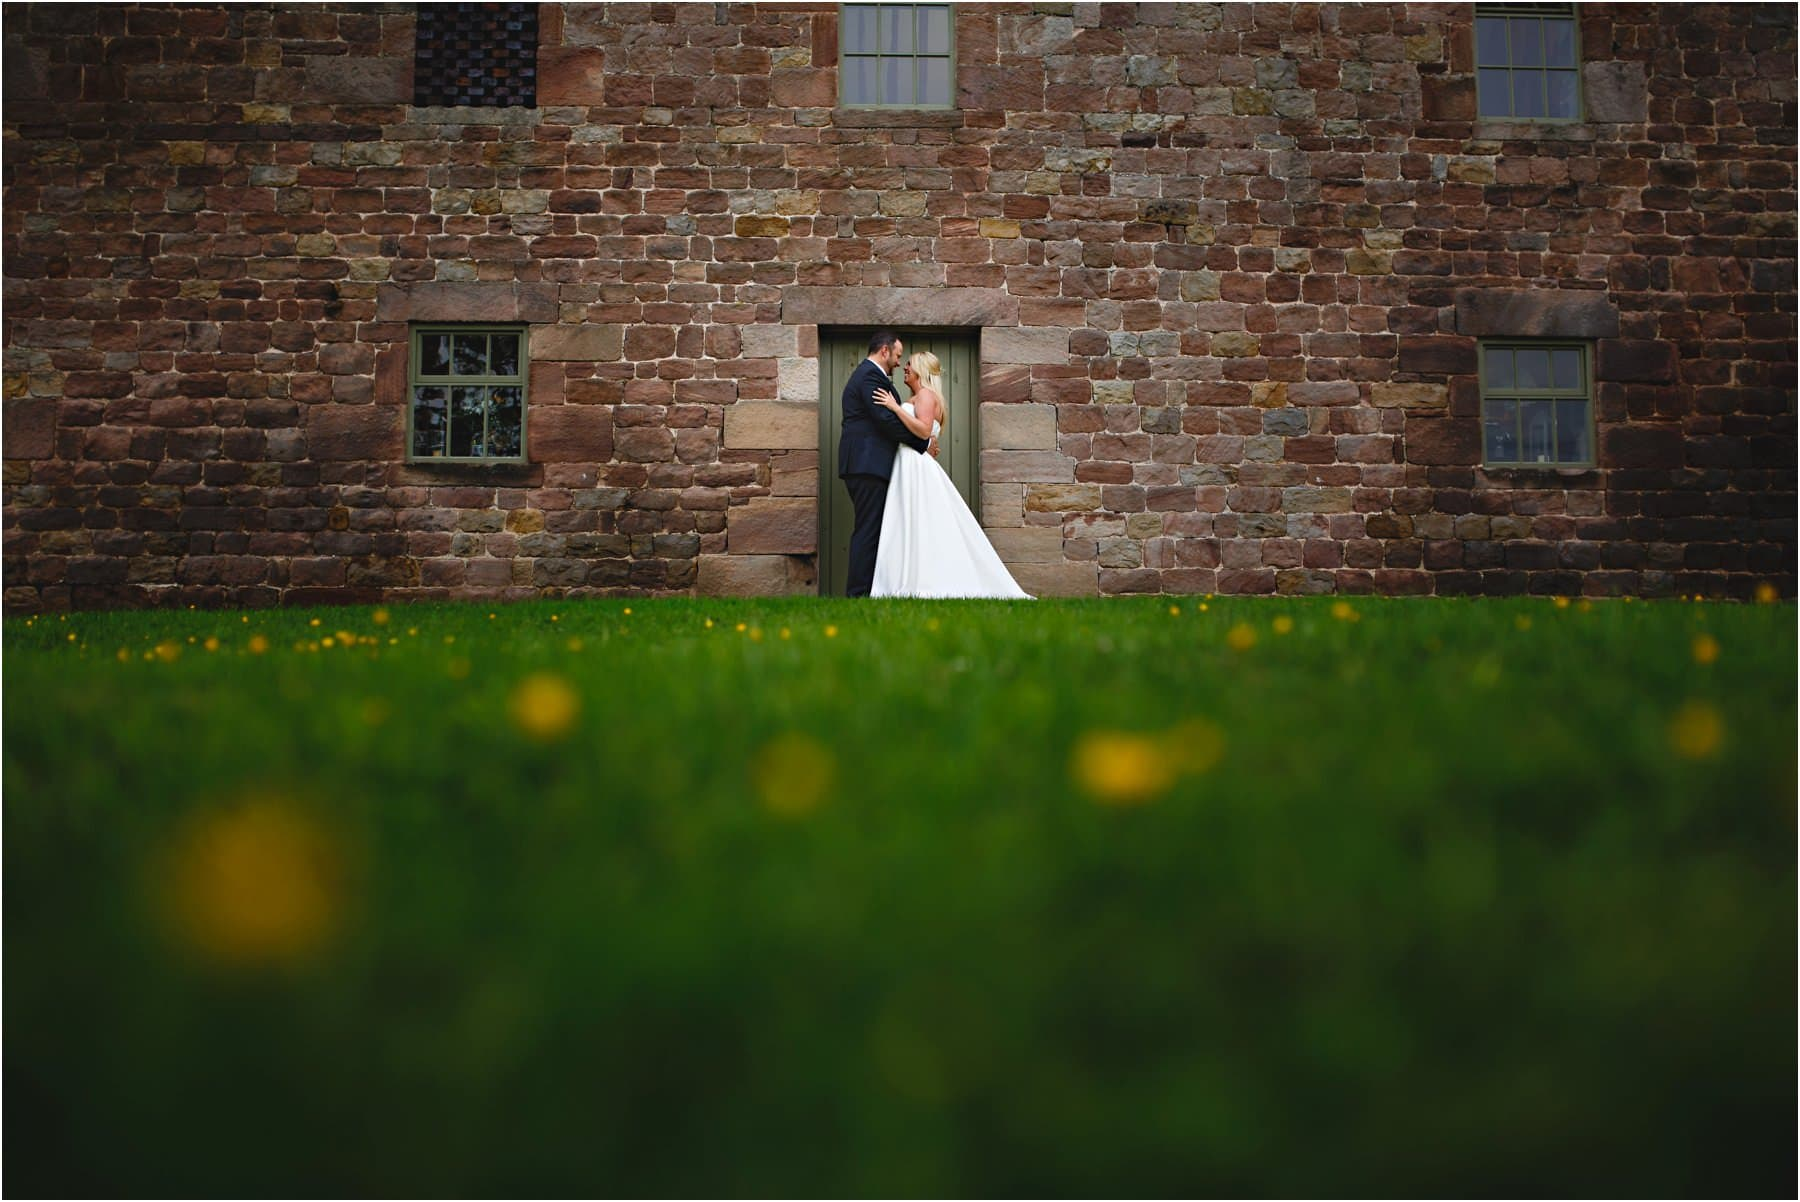 Wedding photography at The Ashes, near Leek